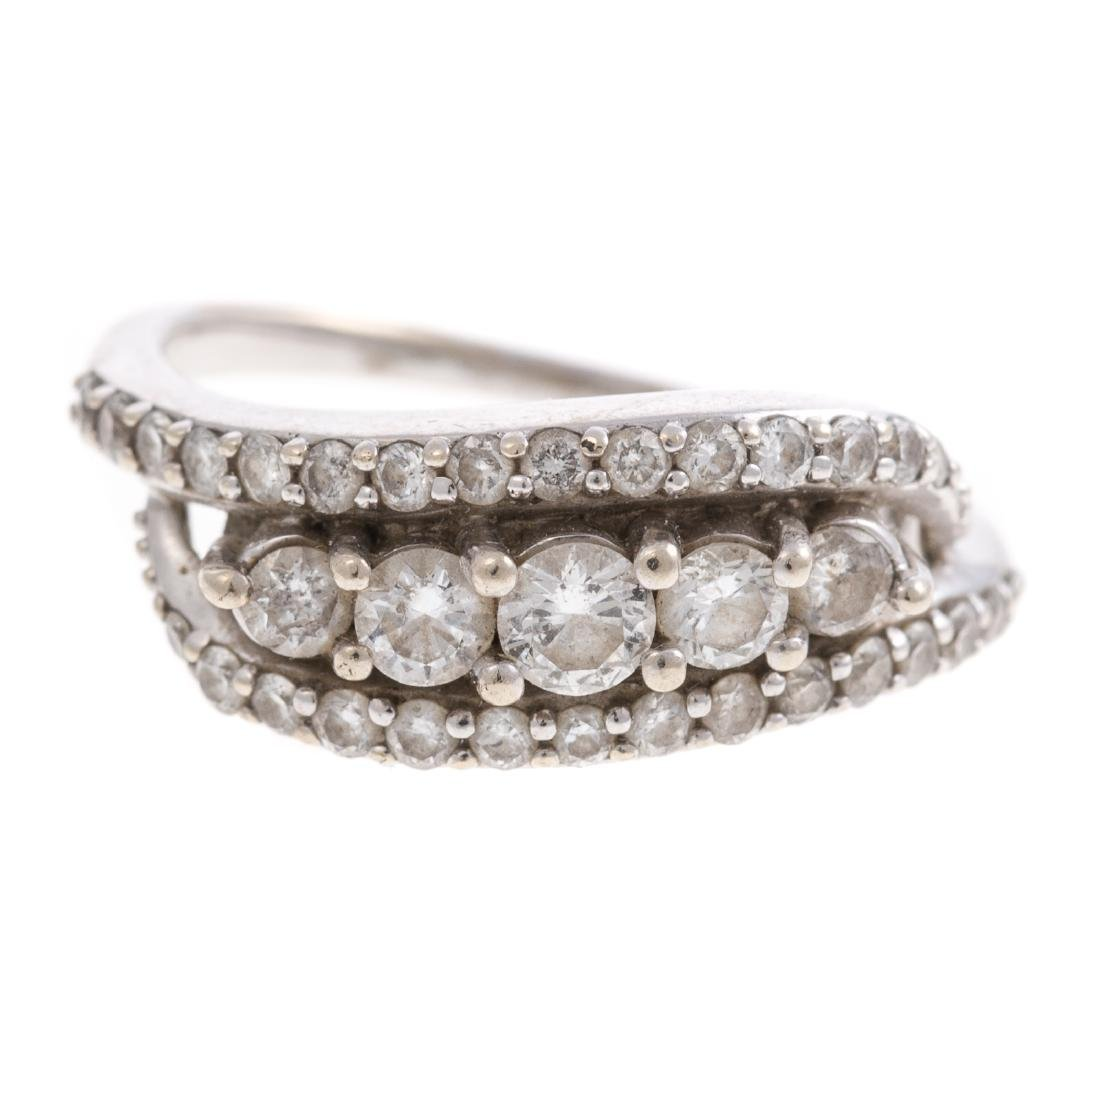 A Ladies Classic Diamond Ring in 14K Gold